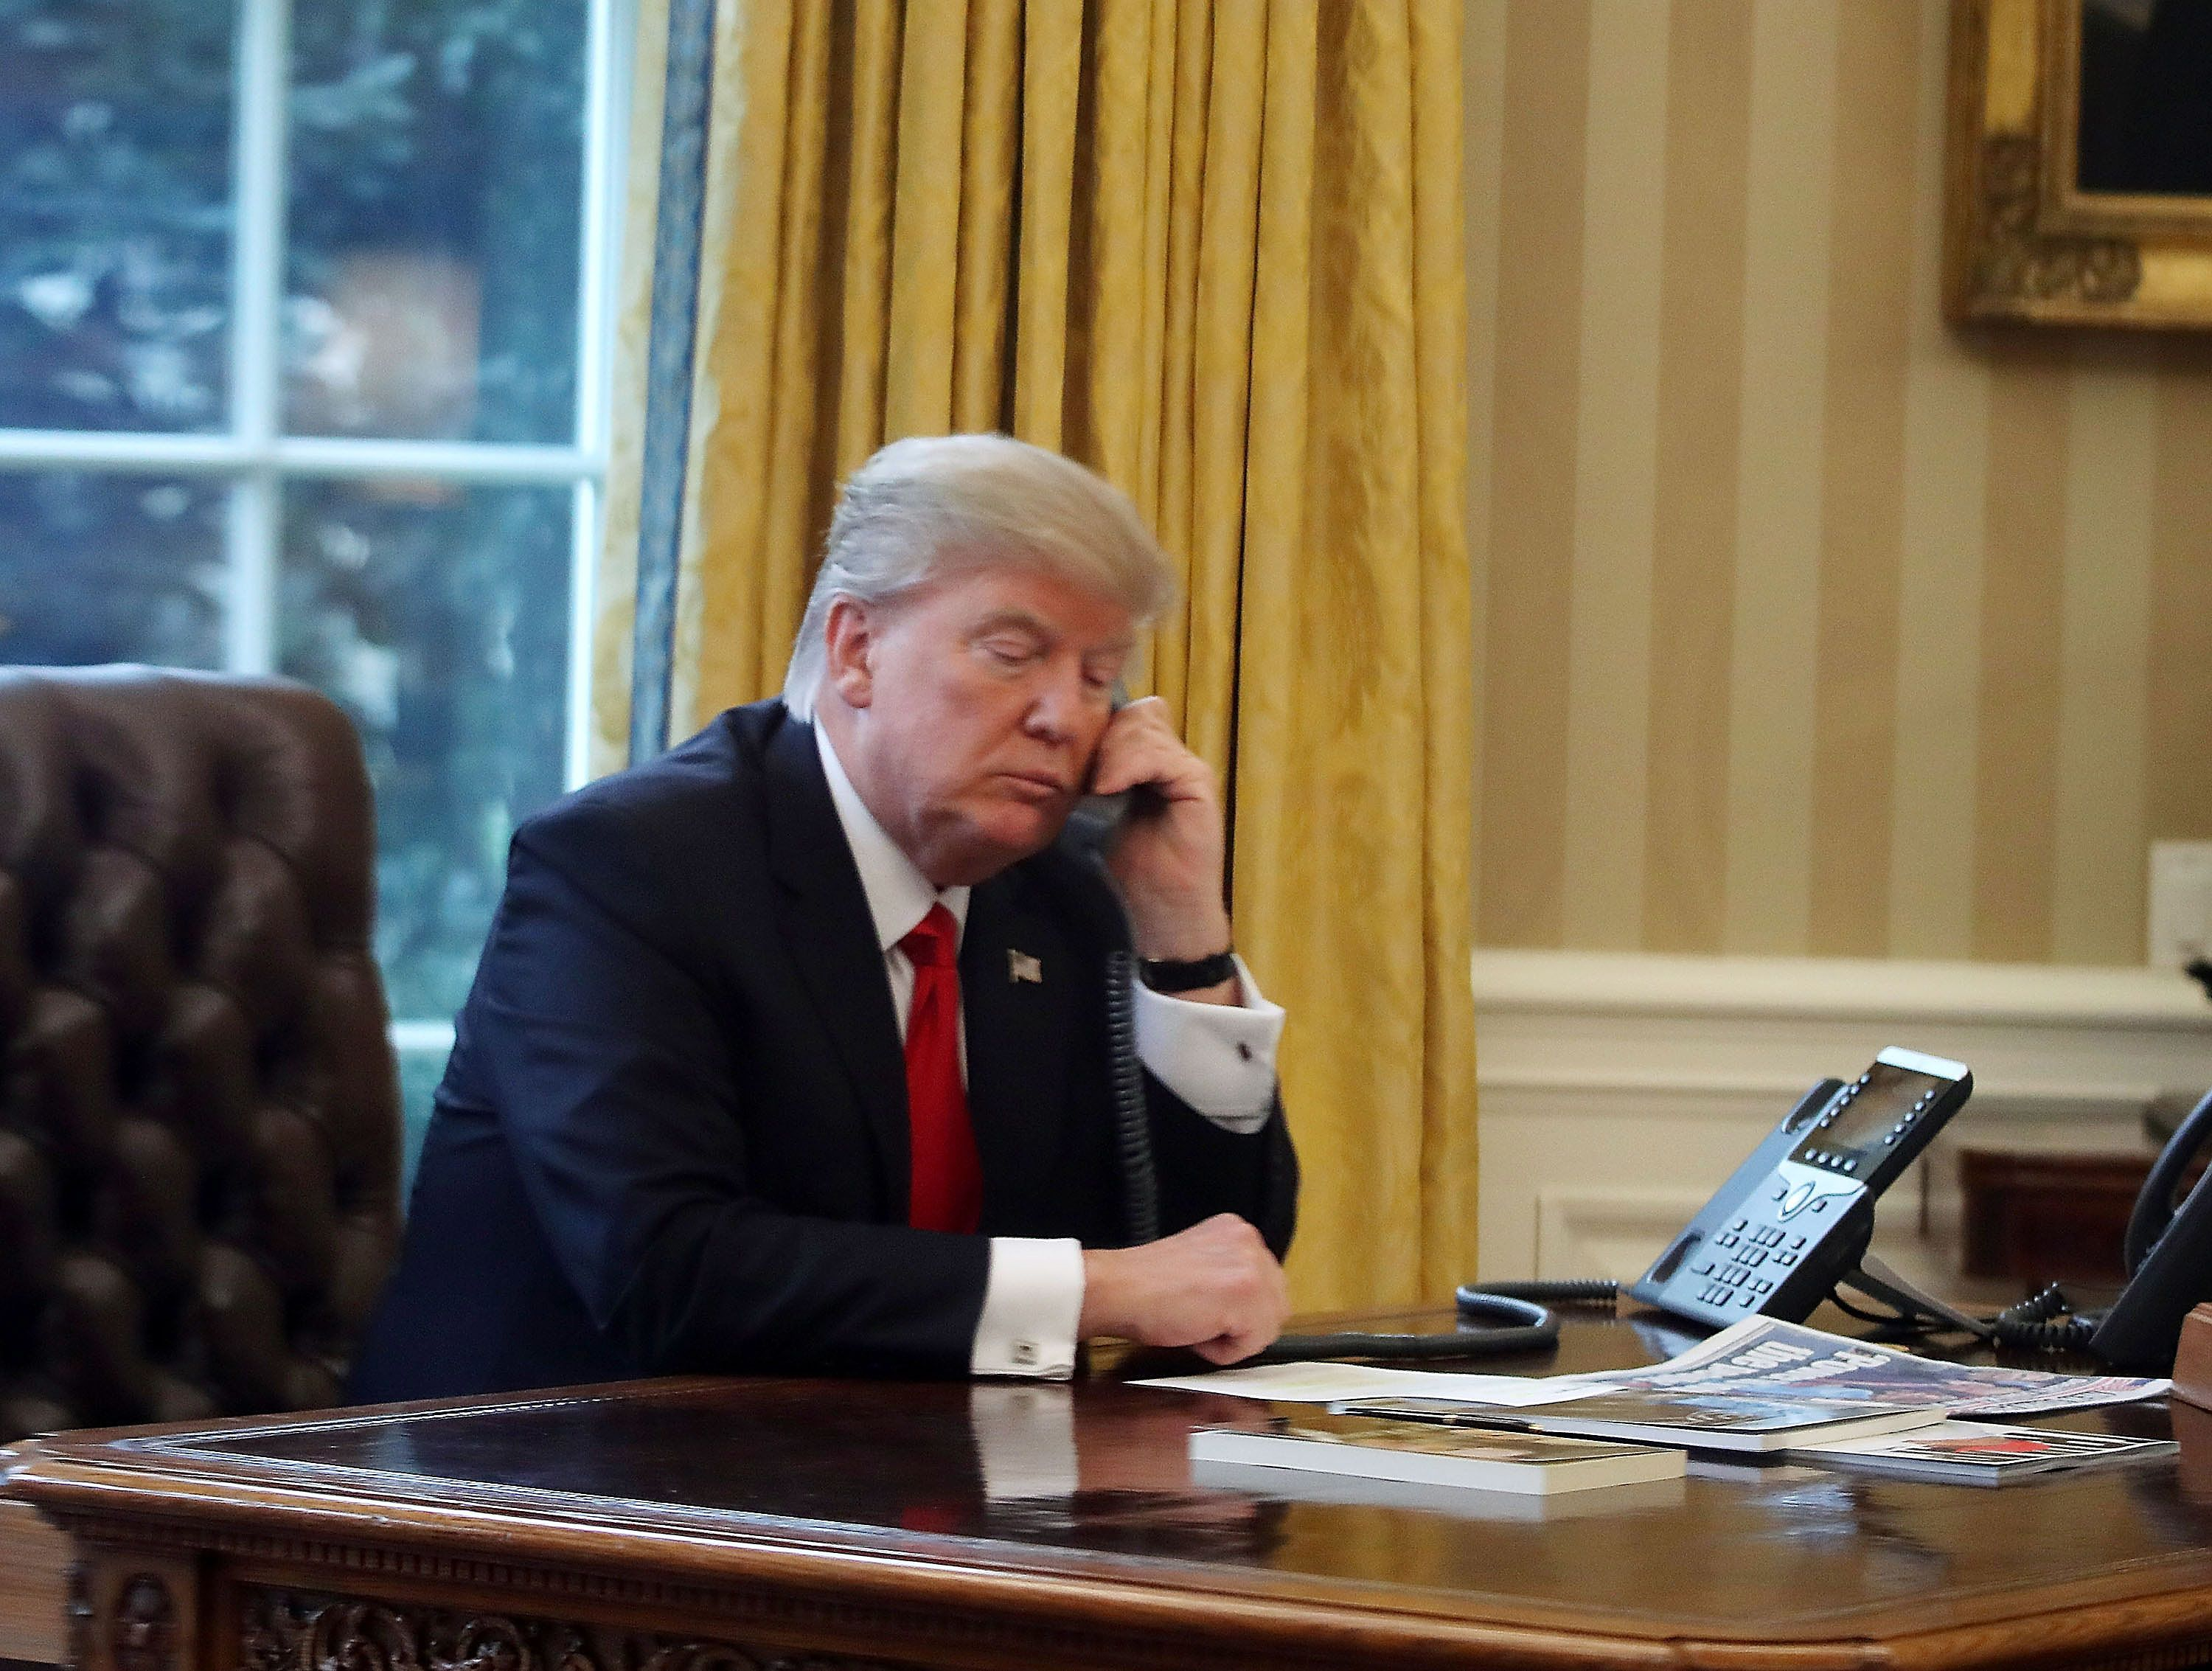 President Donald Trump has said he believes that Barack Obama wiretapped him before the election. No...